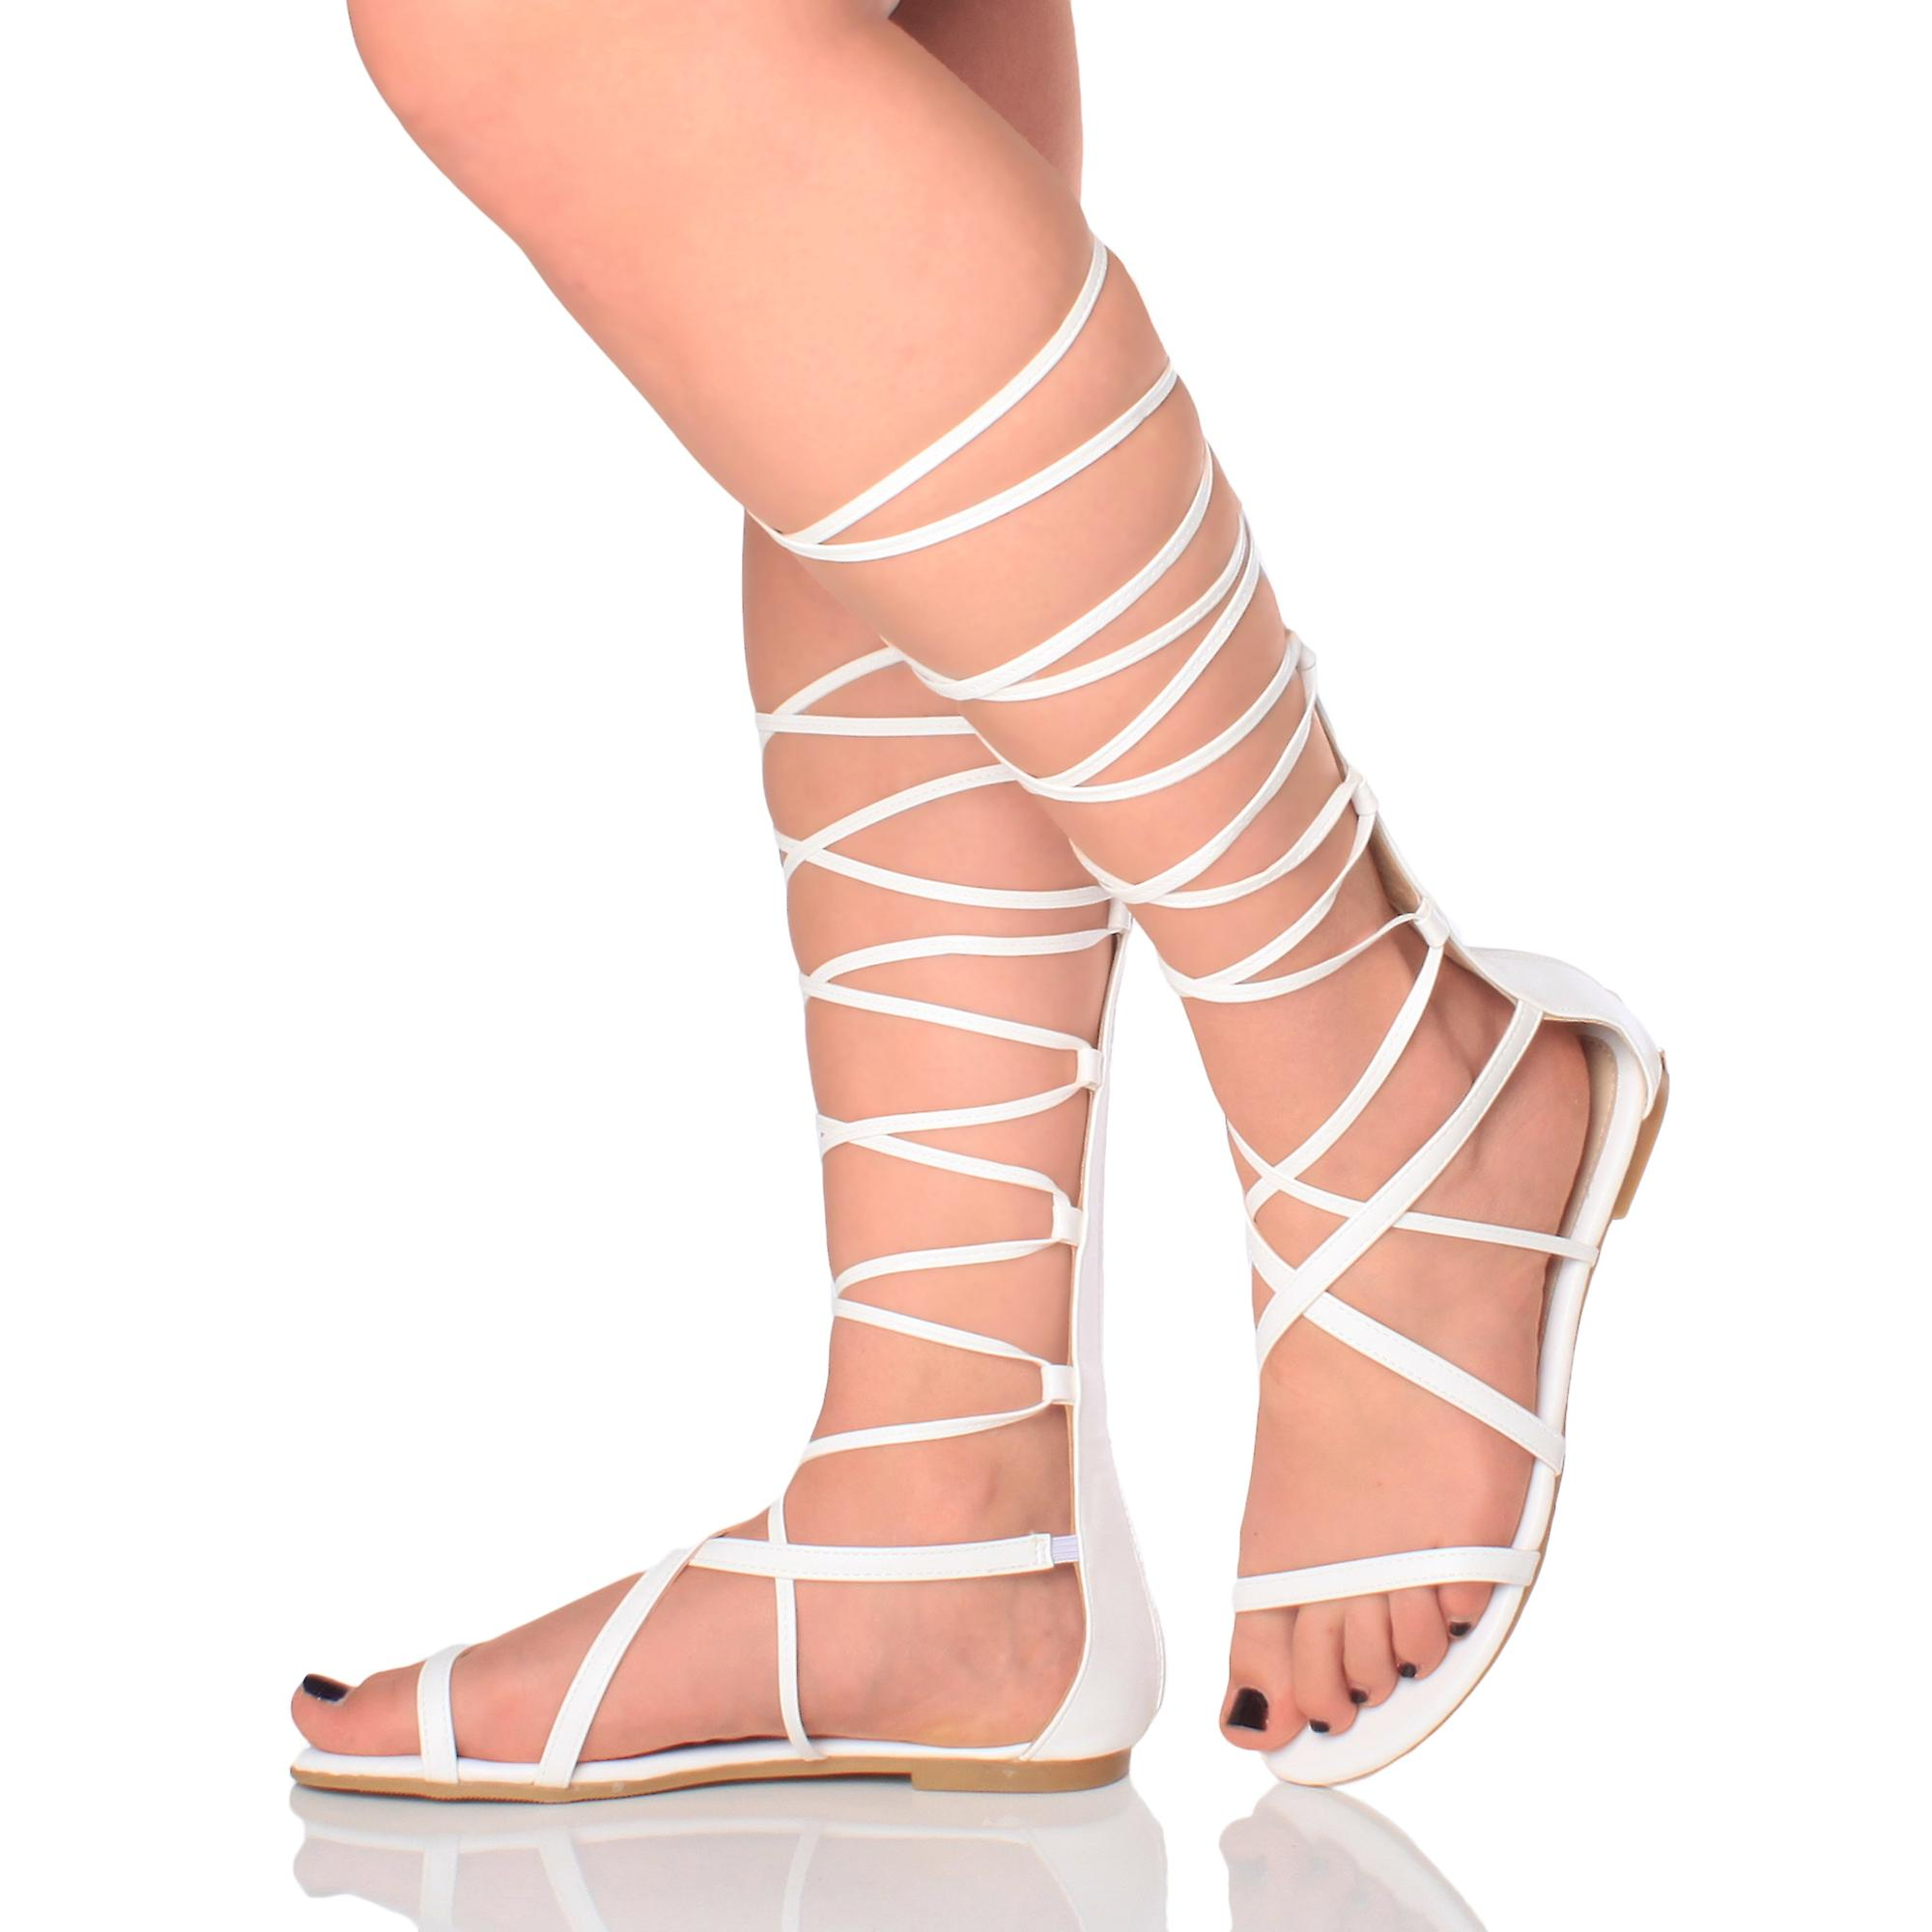 wrap leg high womens sandals gladiator tie up flat around strappy Ajvani knee up lace FHw7qx0Z8